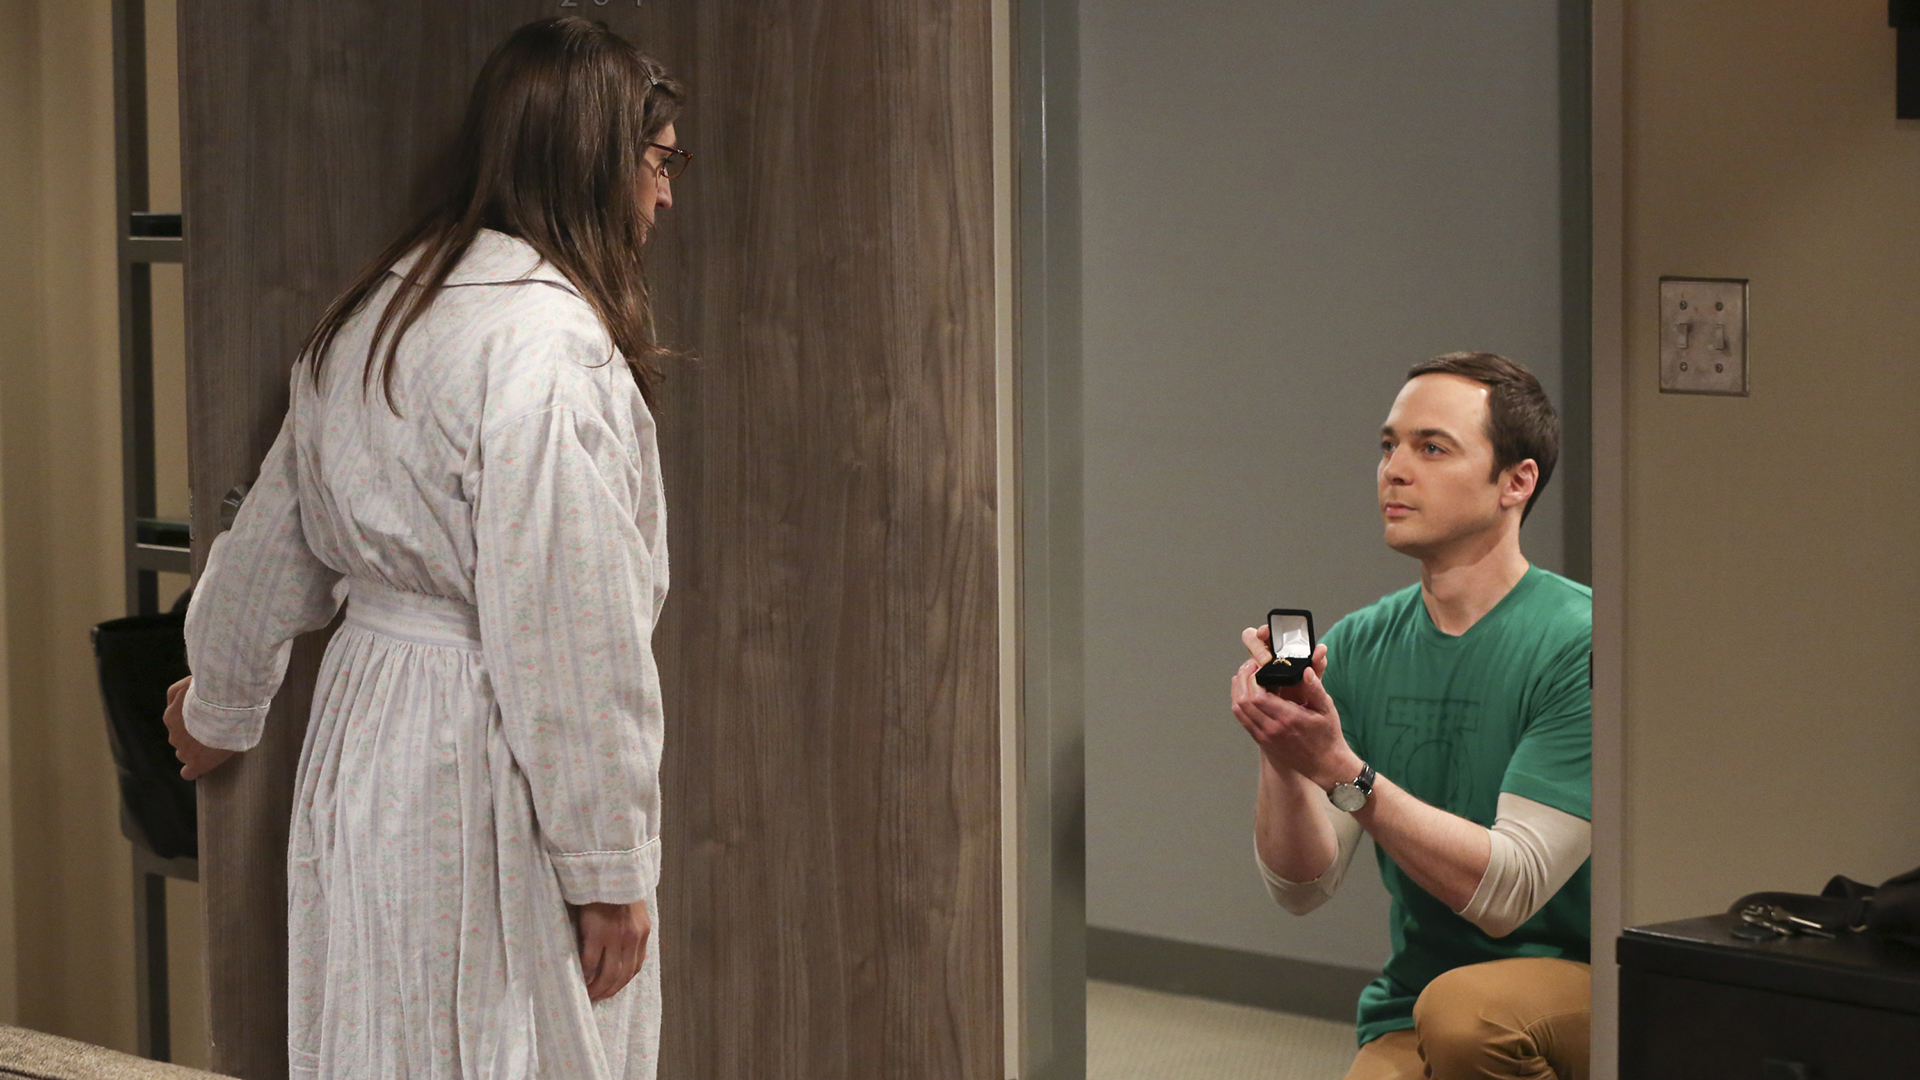 Sheldon's now-famous proposal to Amy was filmed in one take.